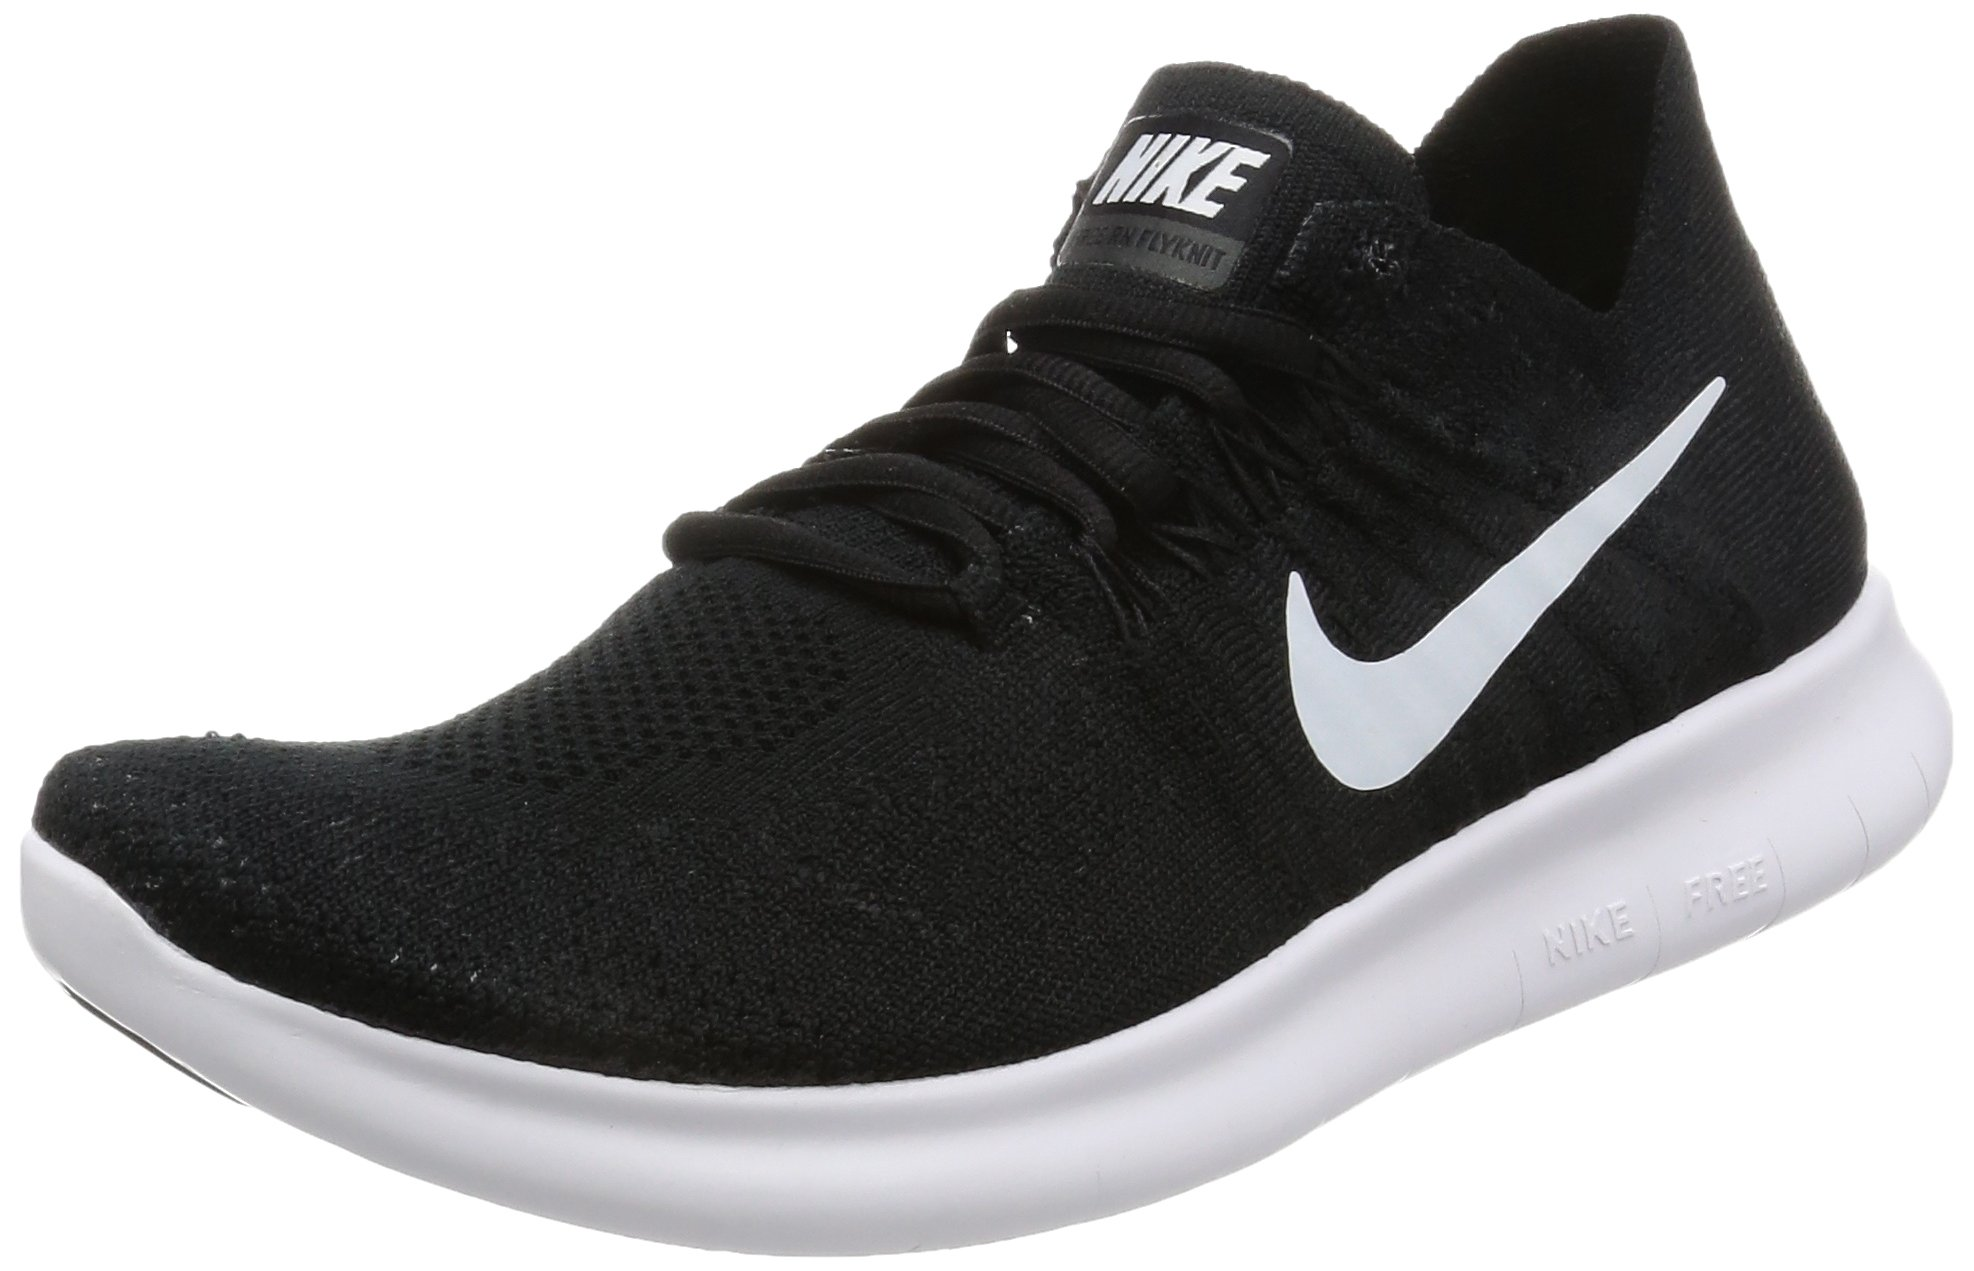 7d395520464c2 Galleon - Nike Women s Free Rn Flyknit 2017 Black White Black Running Shoe  (8.5)